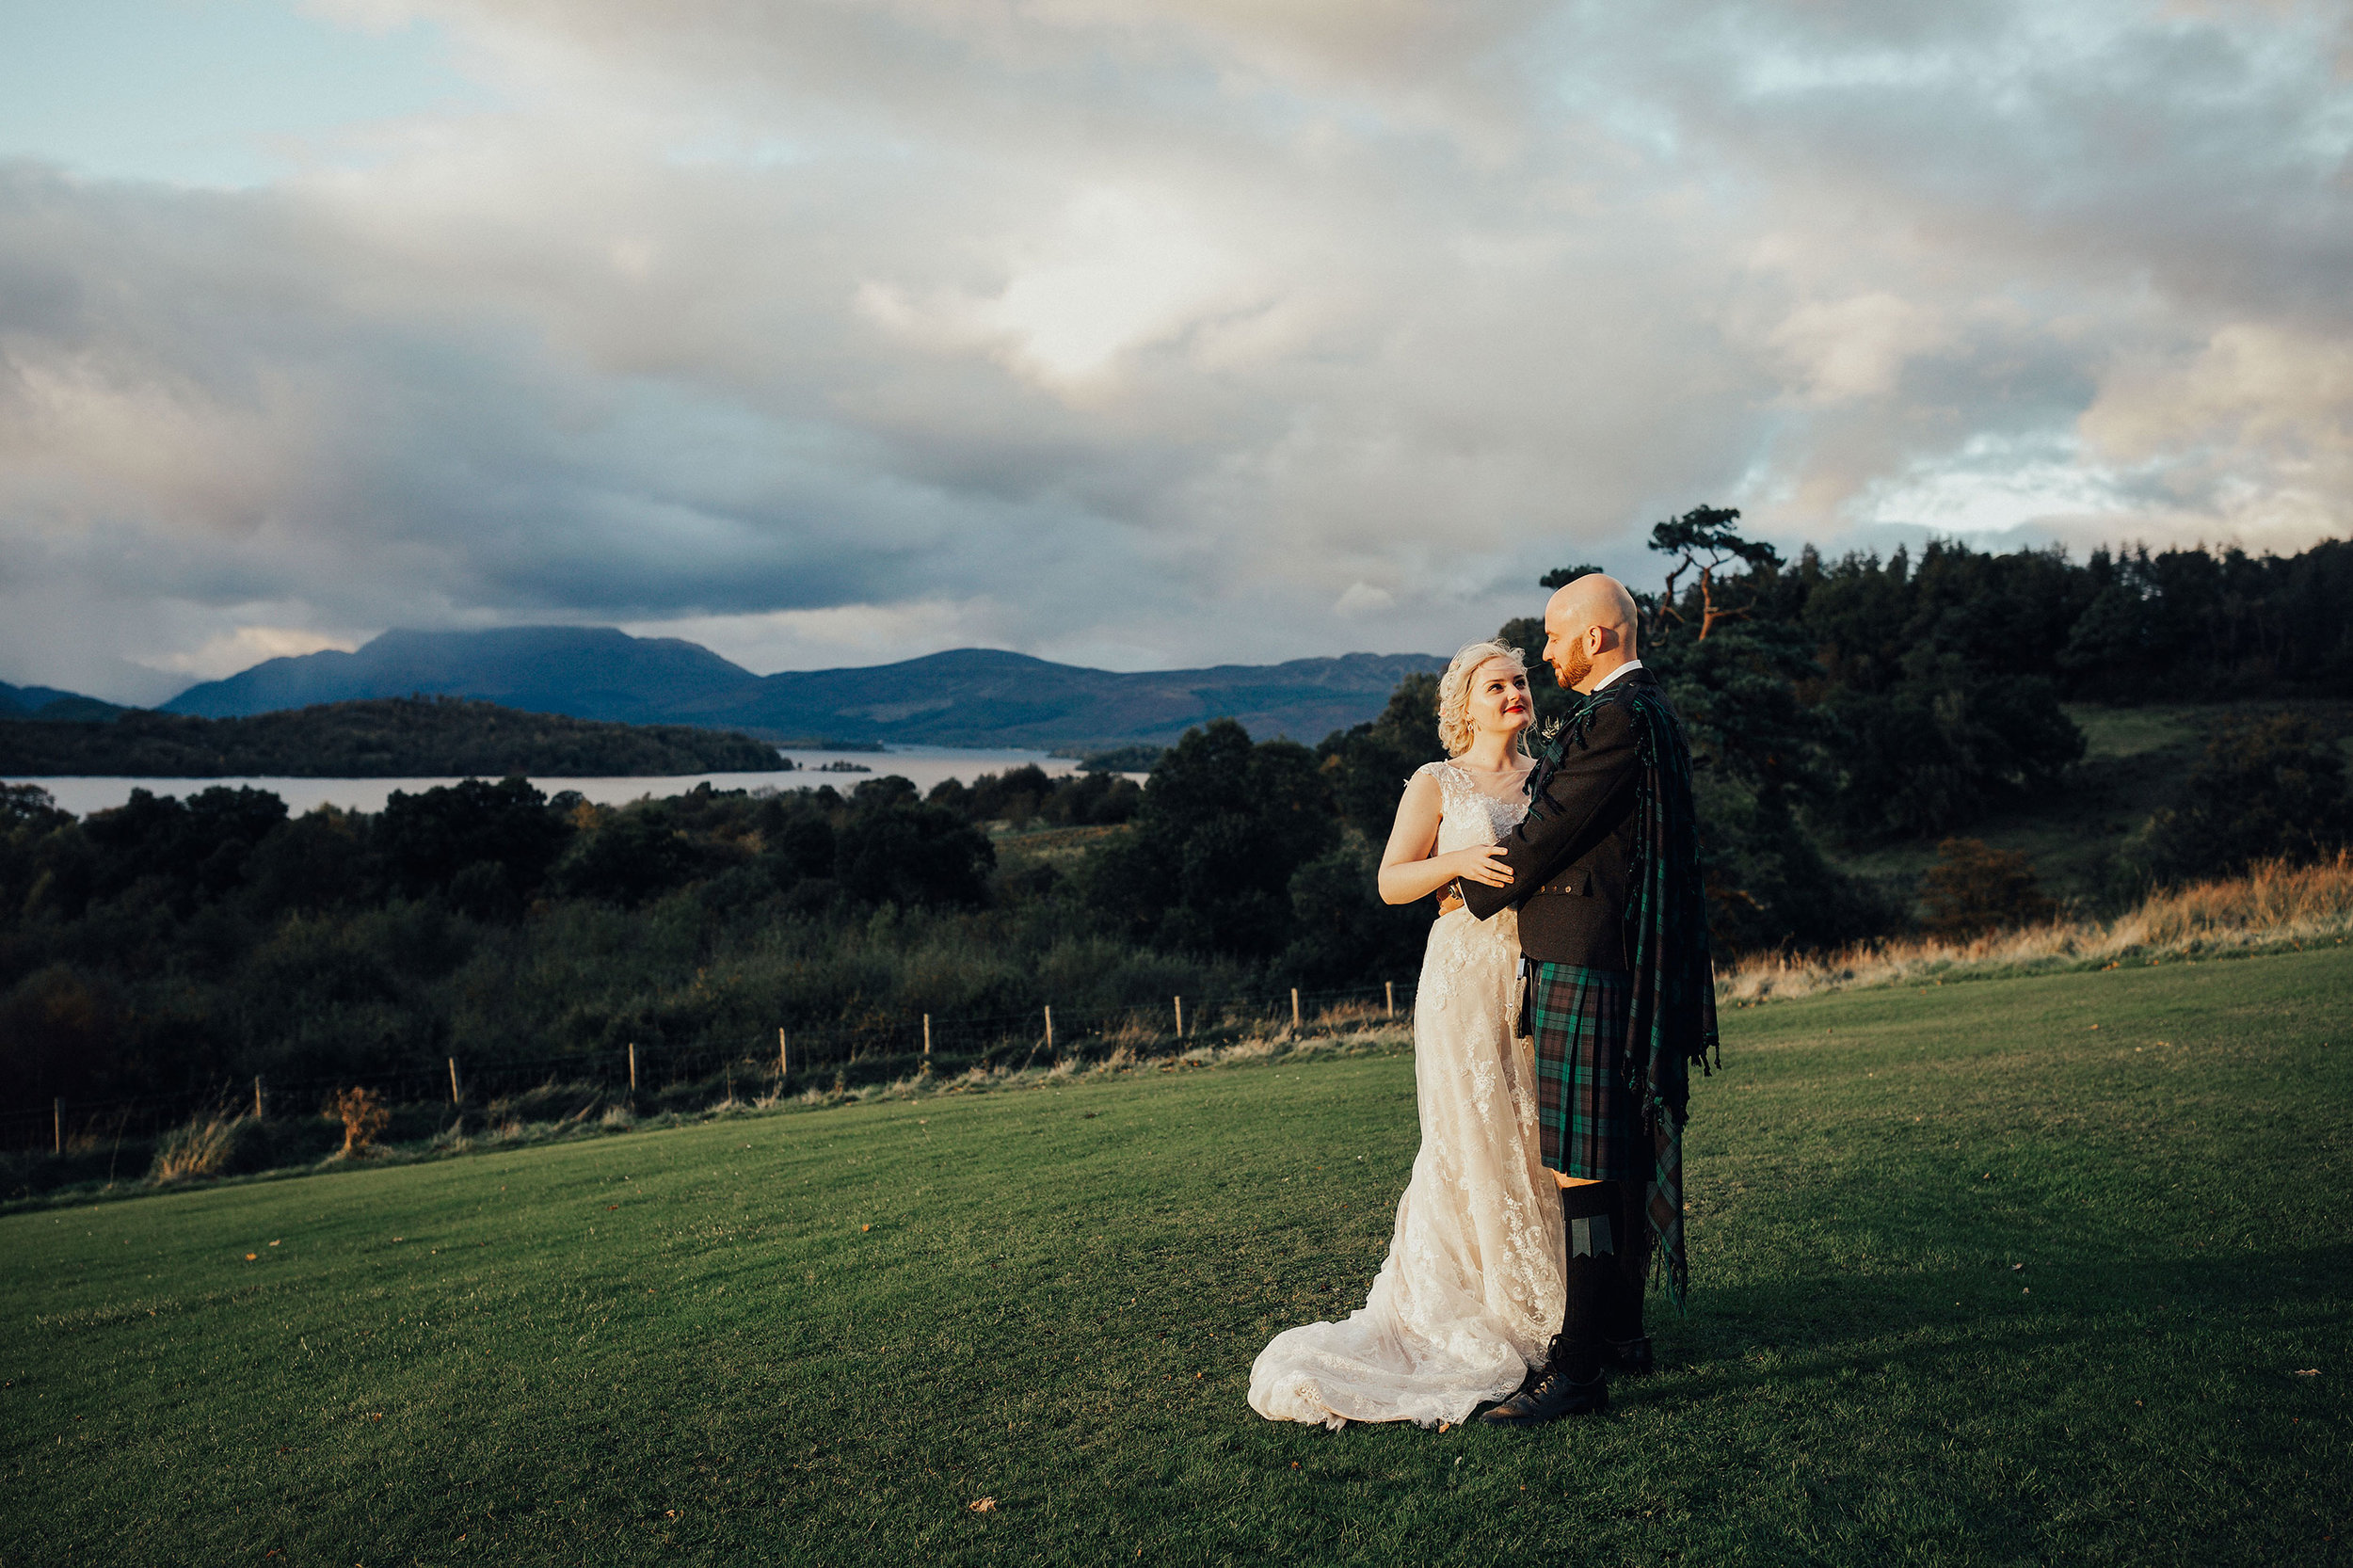 BOTURICH_CASTLE_WEDDING_PHOTOGRAPHER_PJ_PHILLIPS_PHOTOGRAPHY_133.jpg